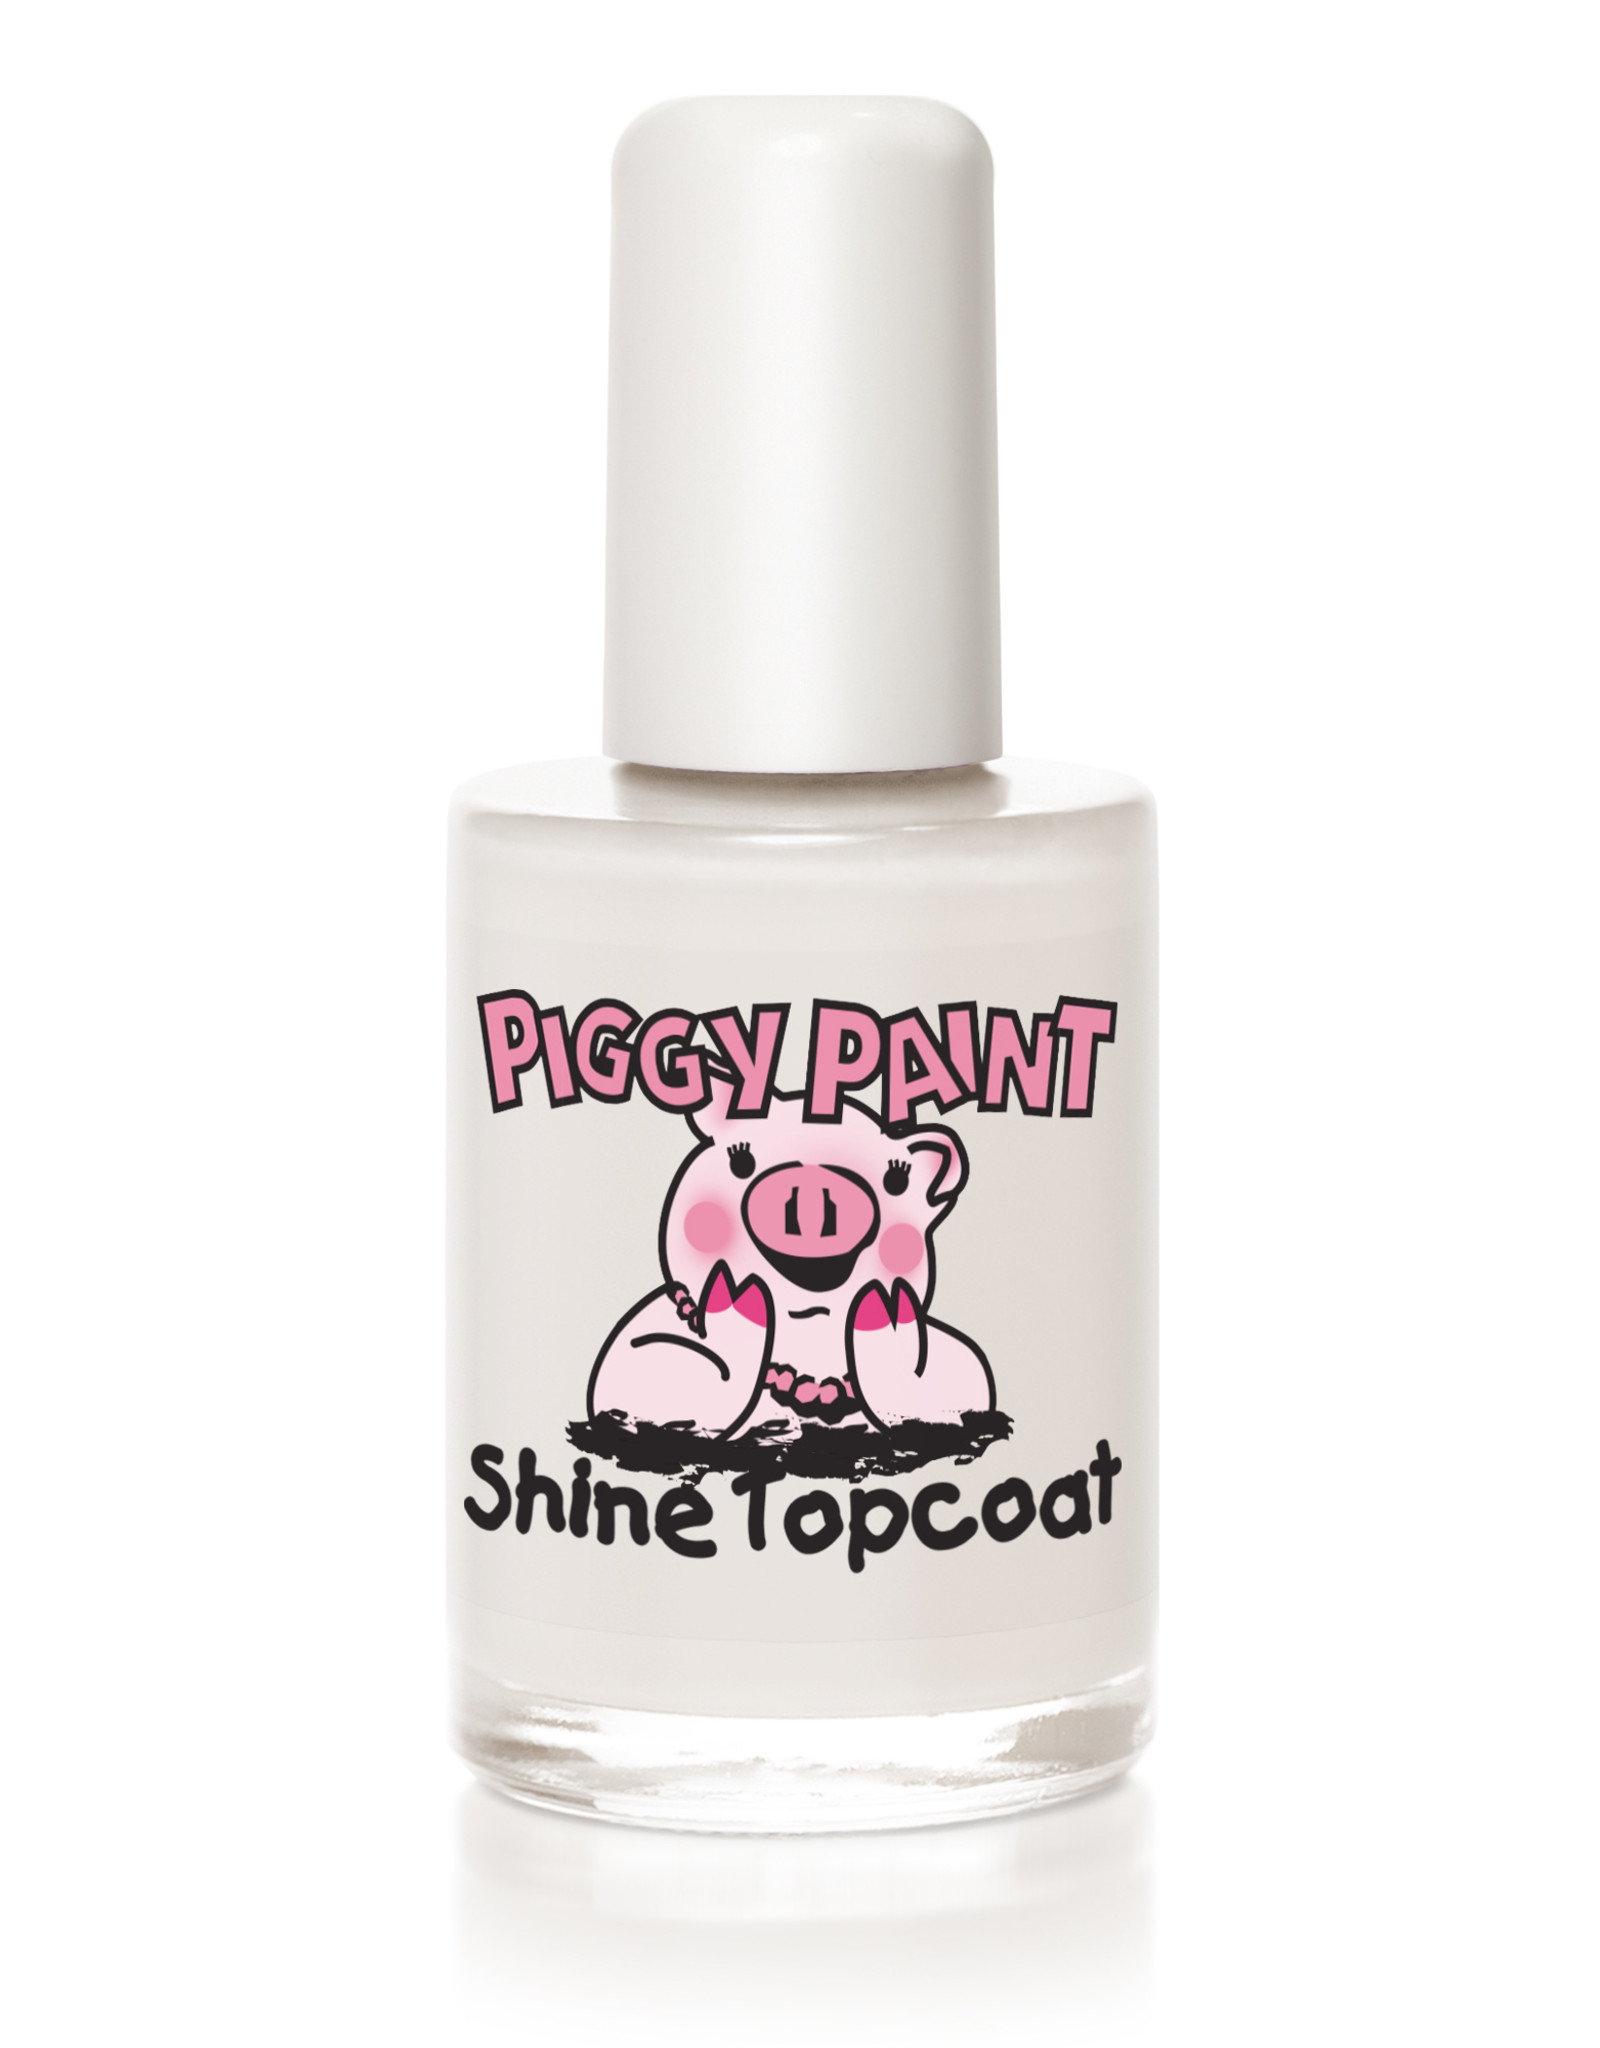 Piggy Paint Shine Topcoat